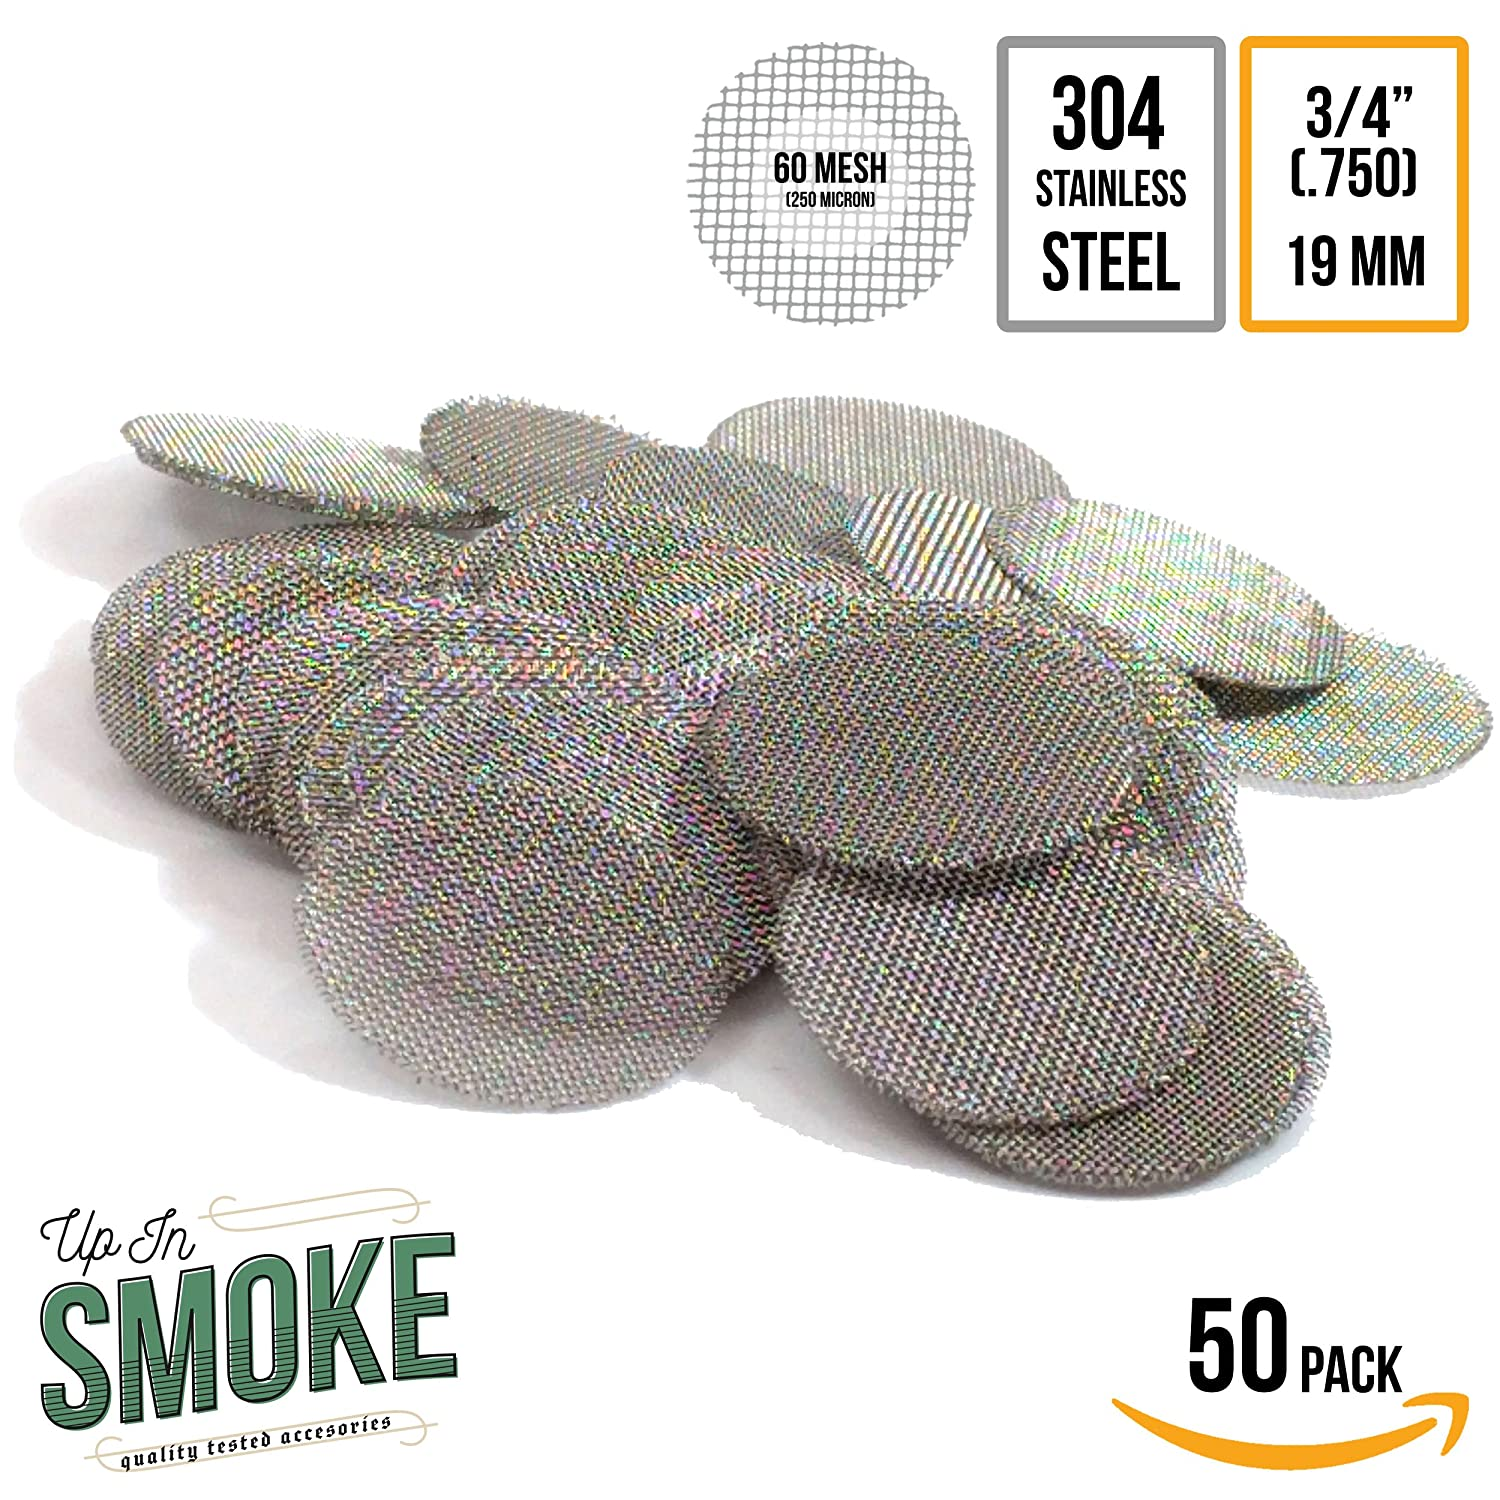 3/4 Made in the USA 304 Stainless Steel Pipe Filters by Up in Smoke Pipe Screens - 50 Pack No Model